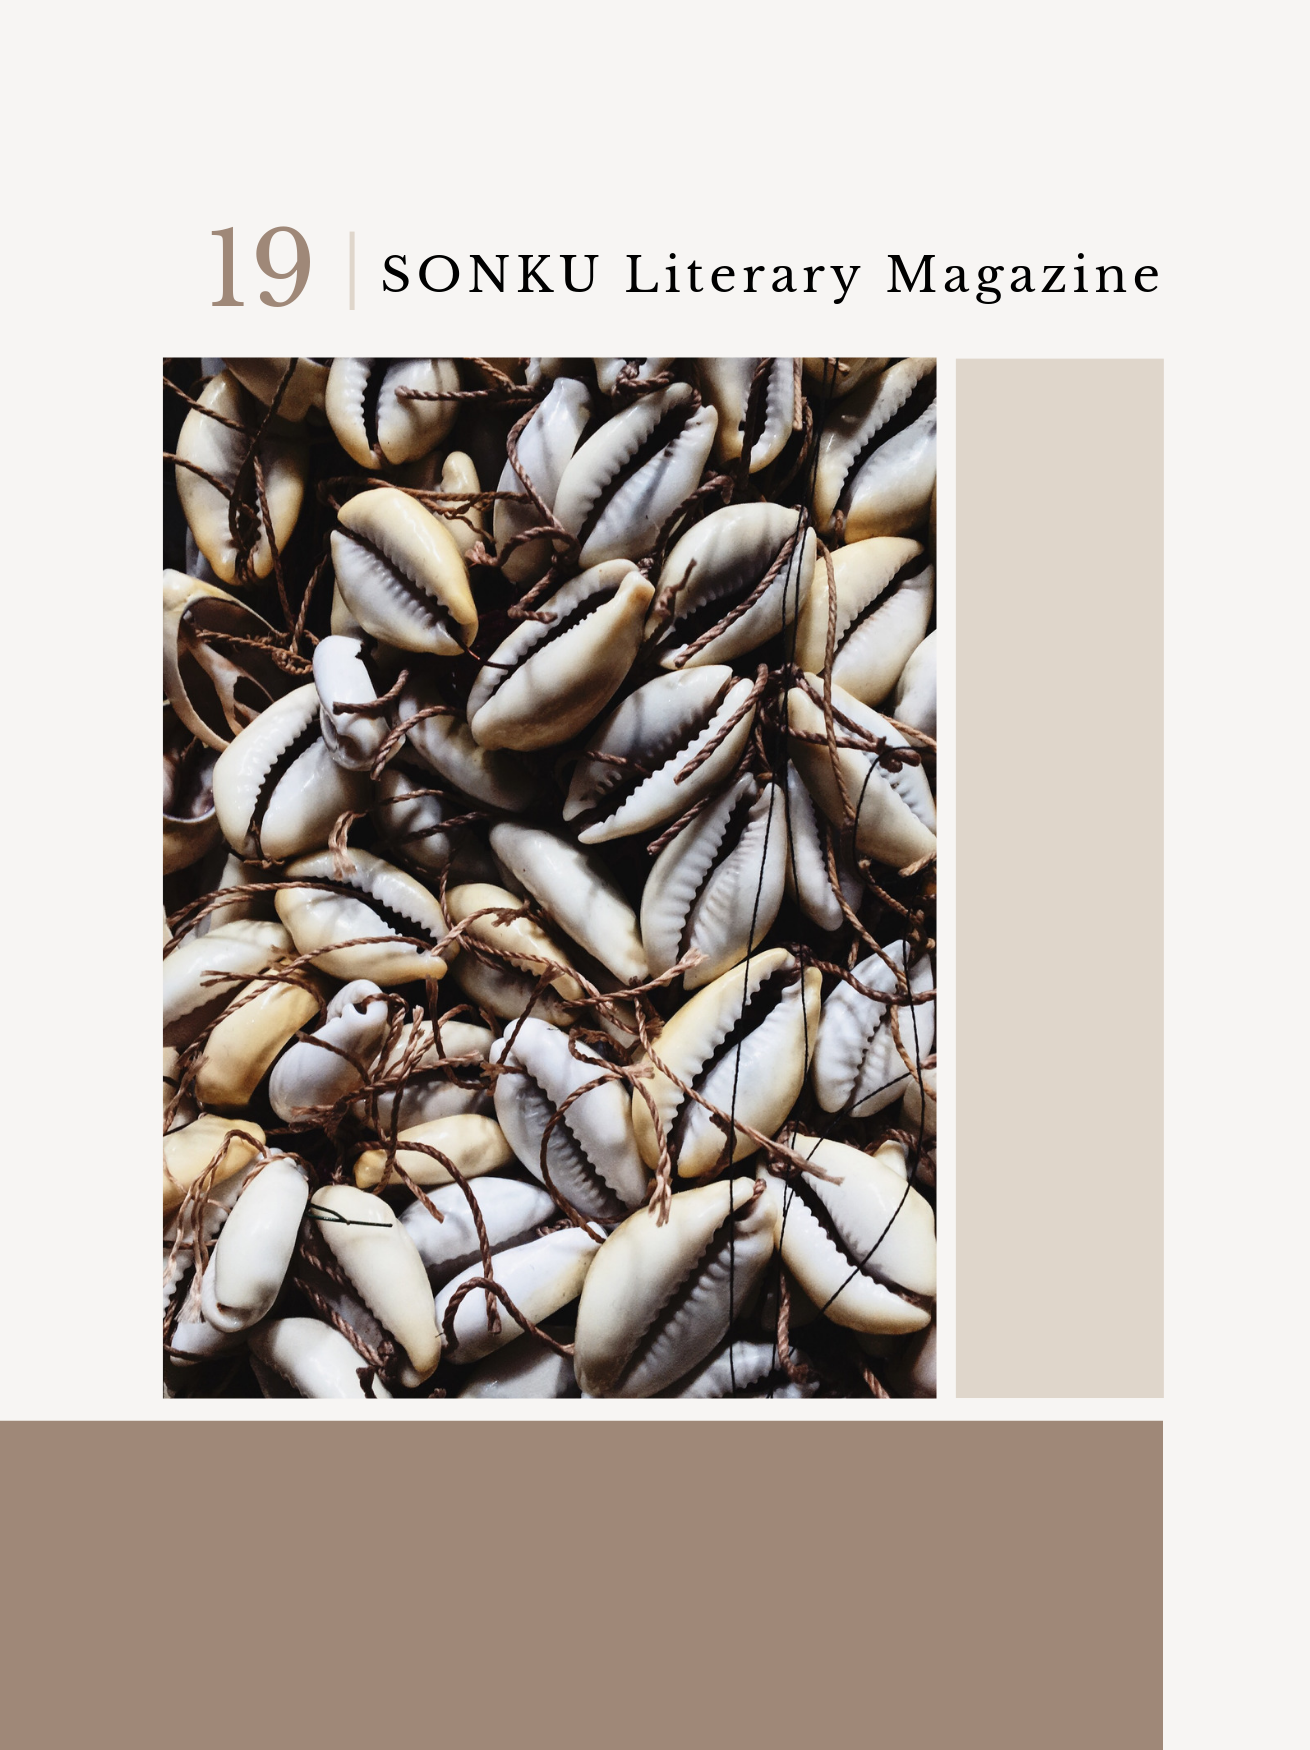 volume I. - Click here to view volume I. of our literary magazine, which features work from over 50 artists of color.